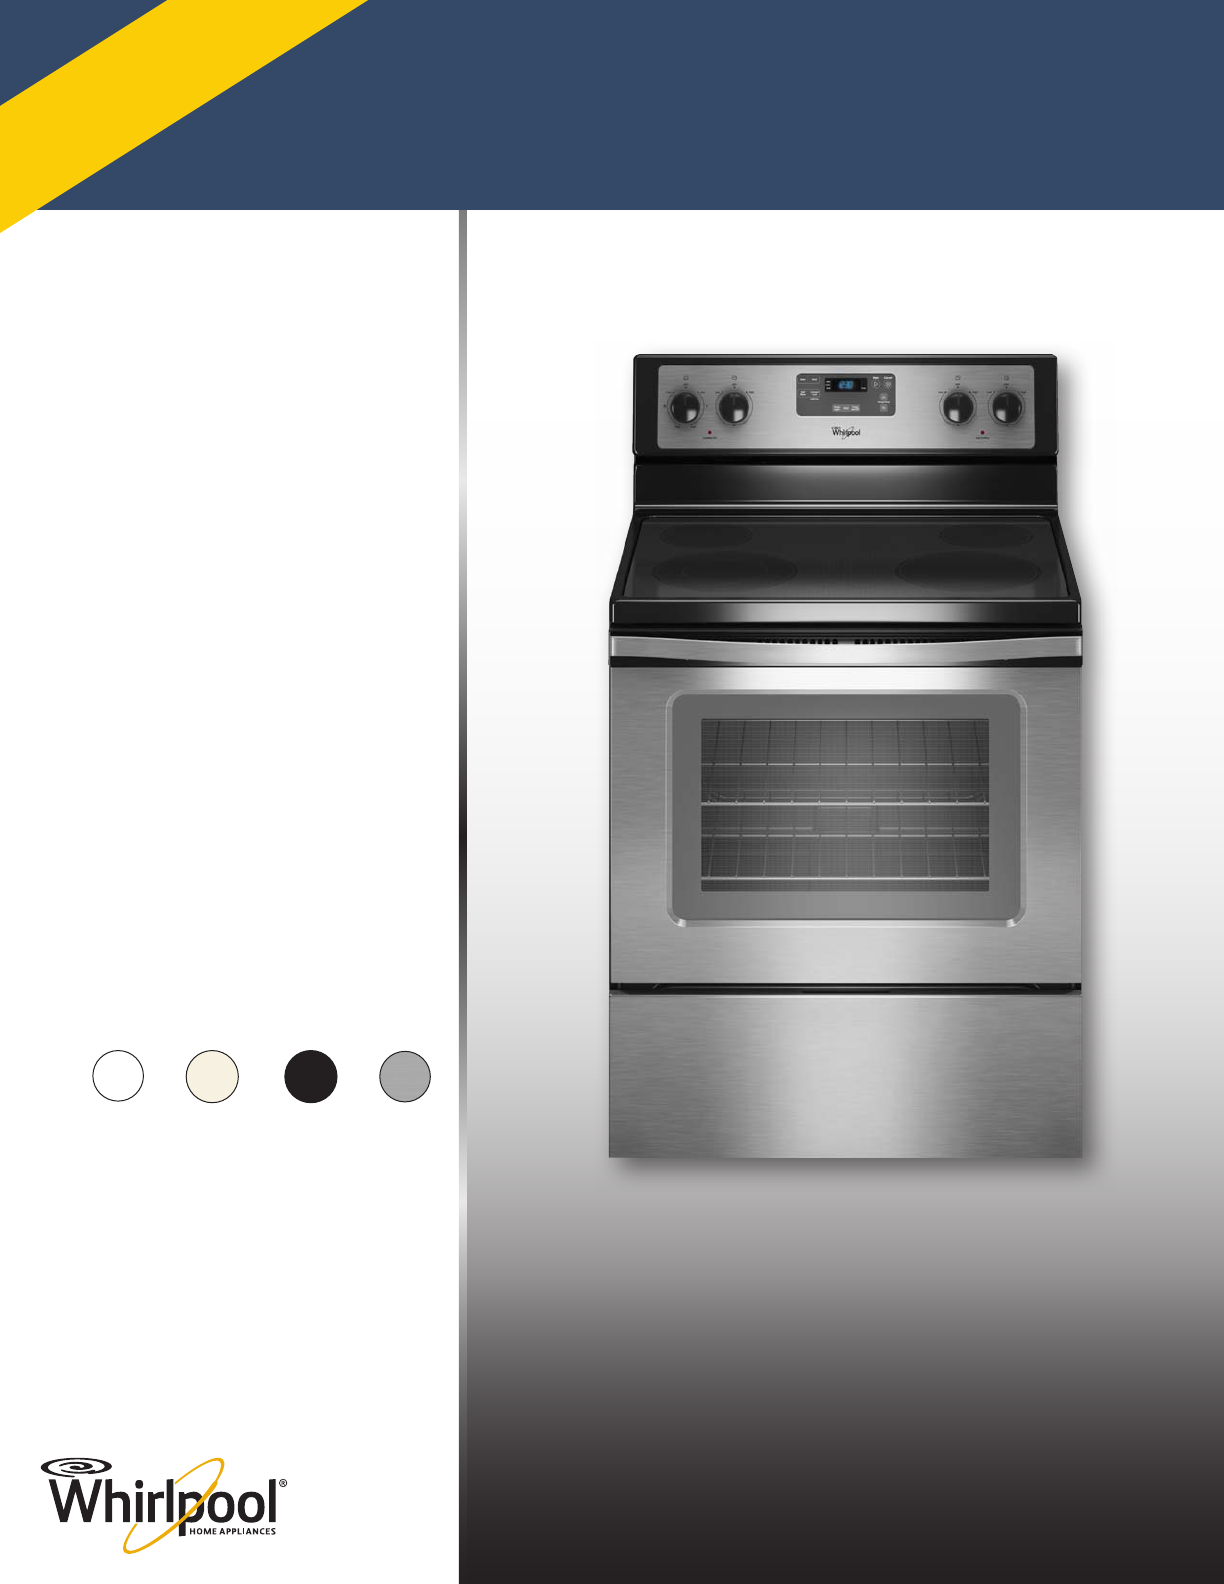 whirlpool range wfe510soa user guide manualsonline com rh kitchen manualsonline com whirlpool gas oven manual wfg320mbso whirlpool gas oven manual wfg320mbso